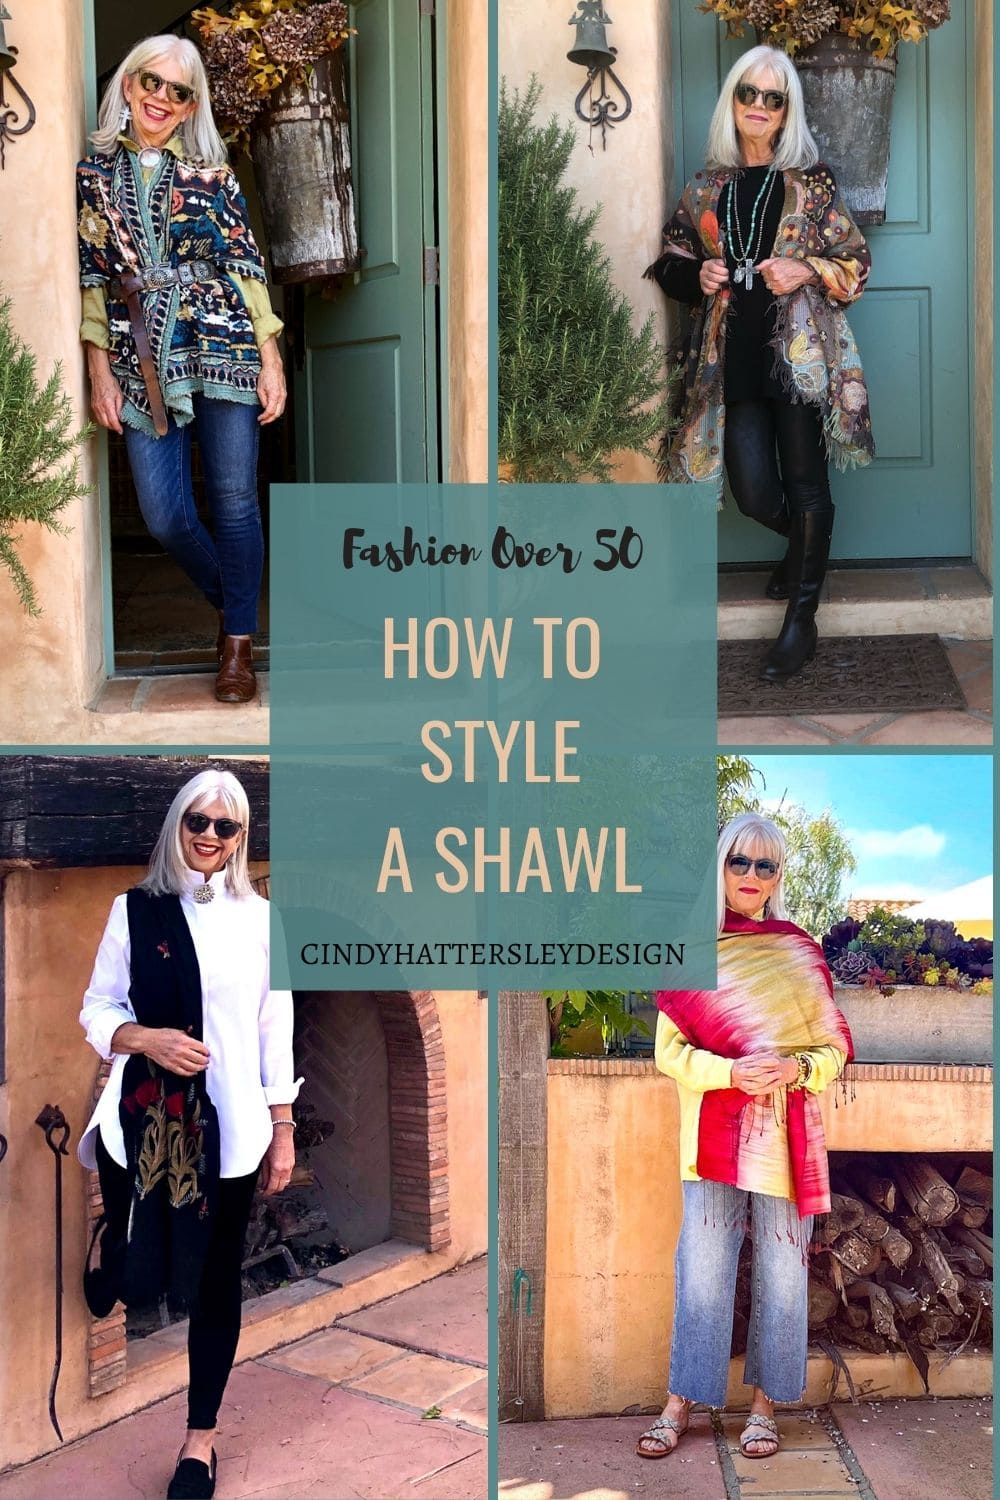 MY FAVORITE WAYS TO STYLE A SHAWL